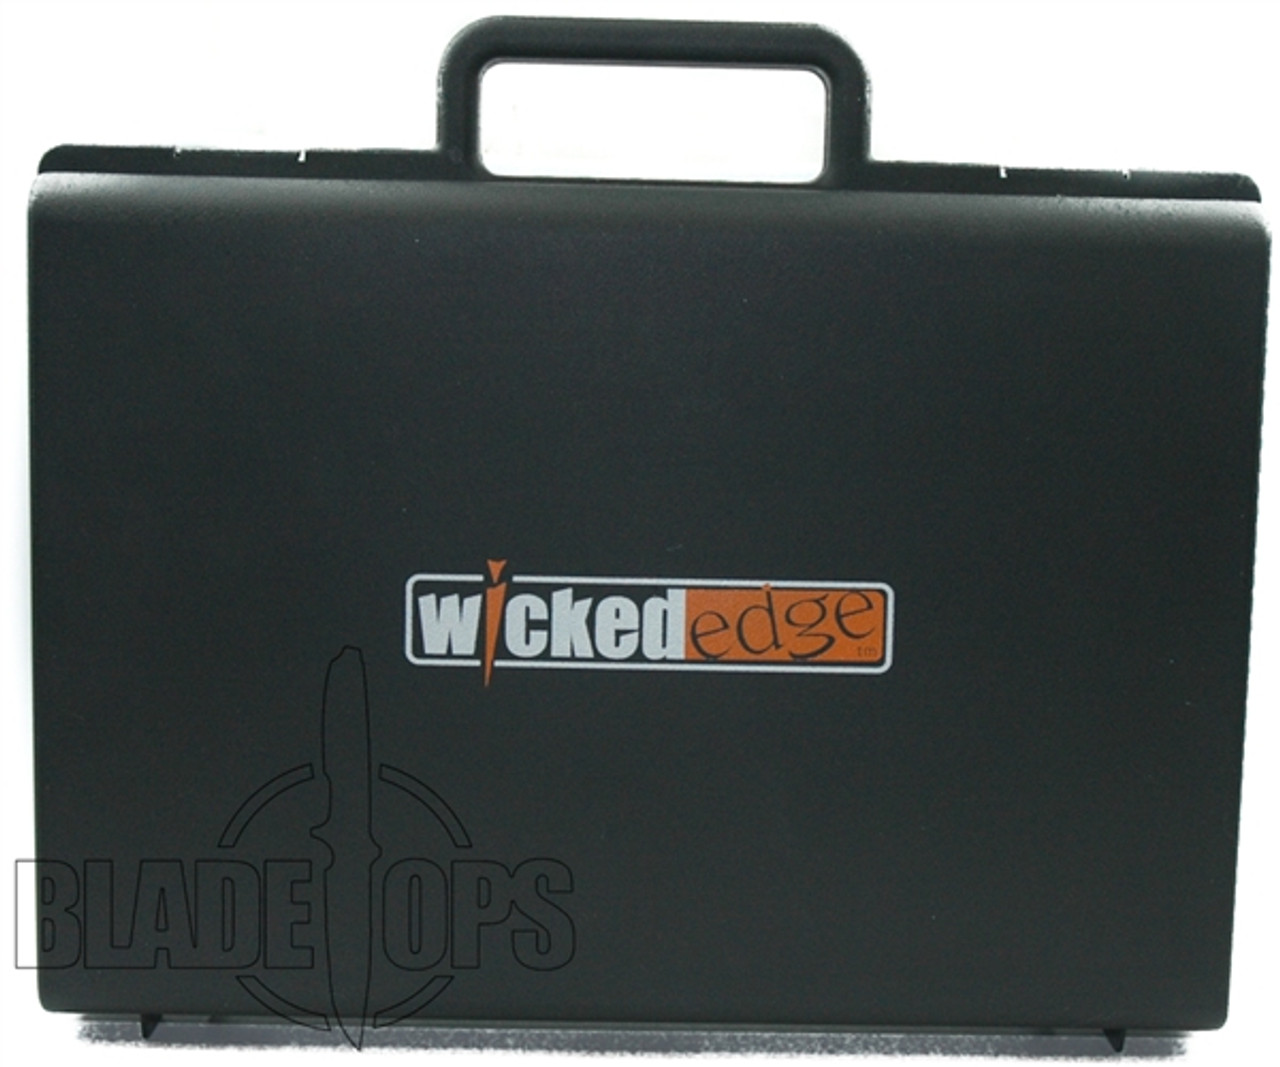 Wicked Edge Field and Sport Pro Sharpener Kit